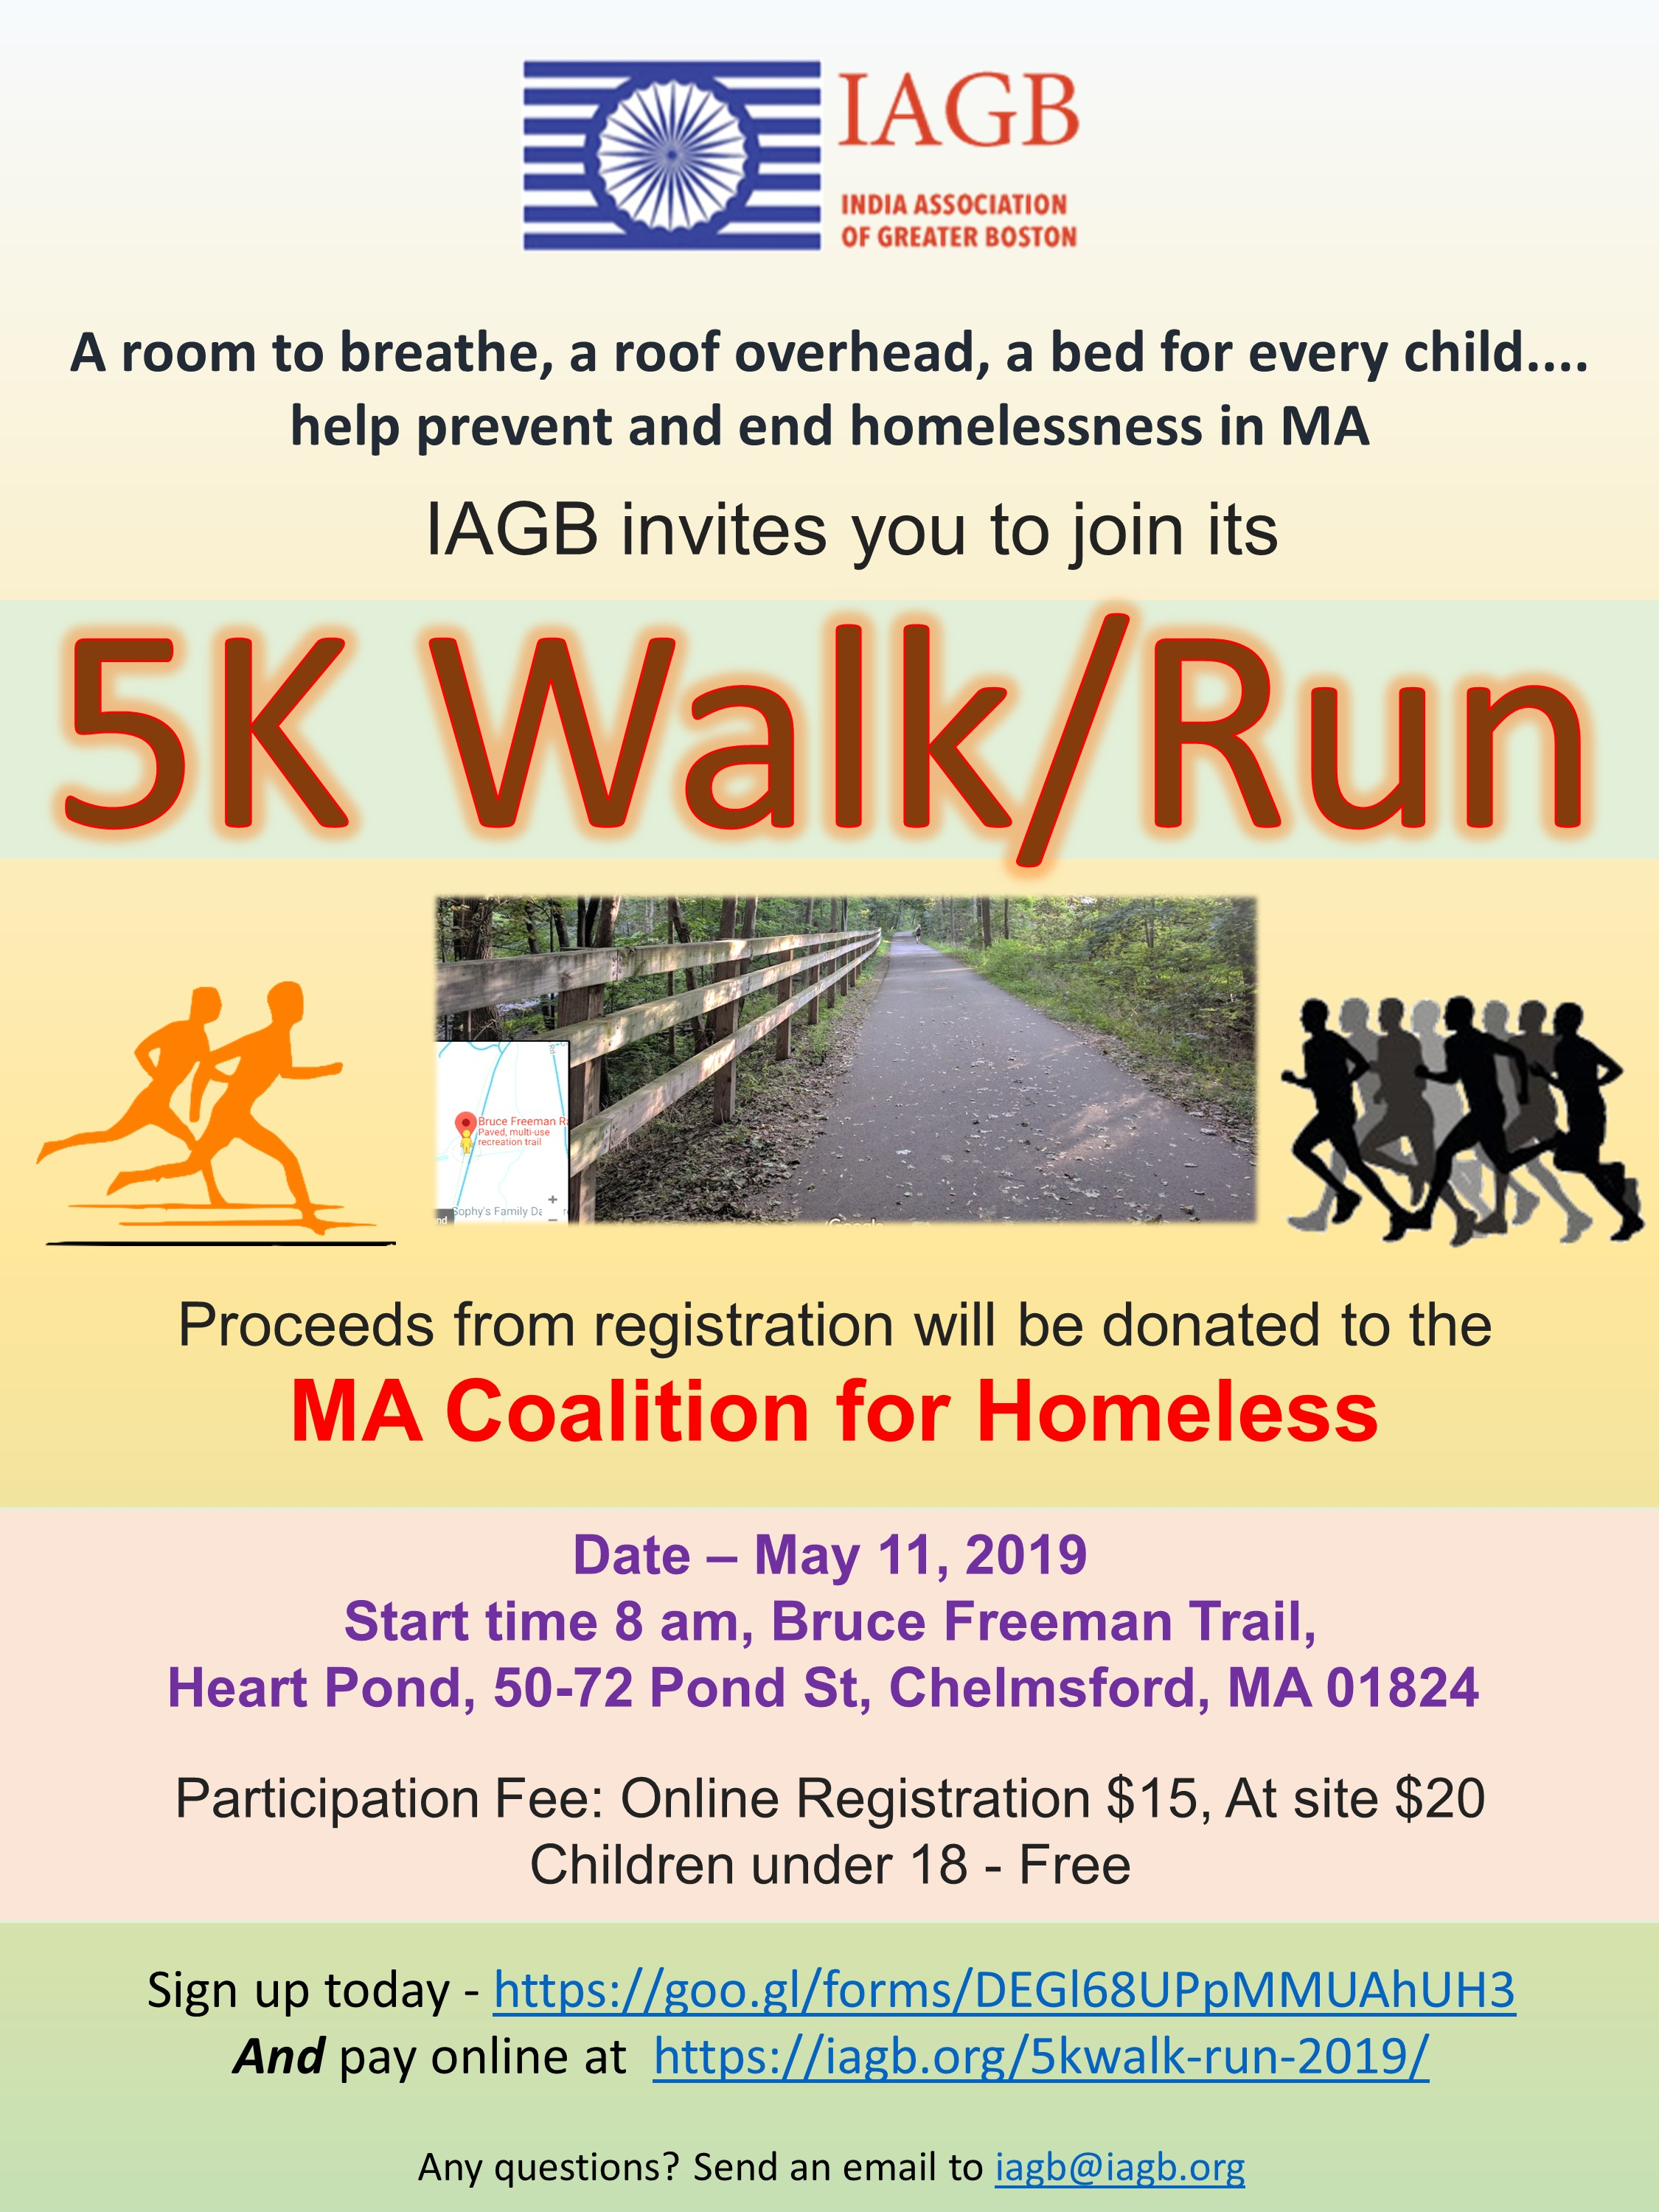 Join the India Association of Greater Boston for a 5K Walk/Run to Benefit the Coalition